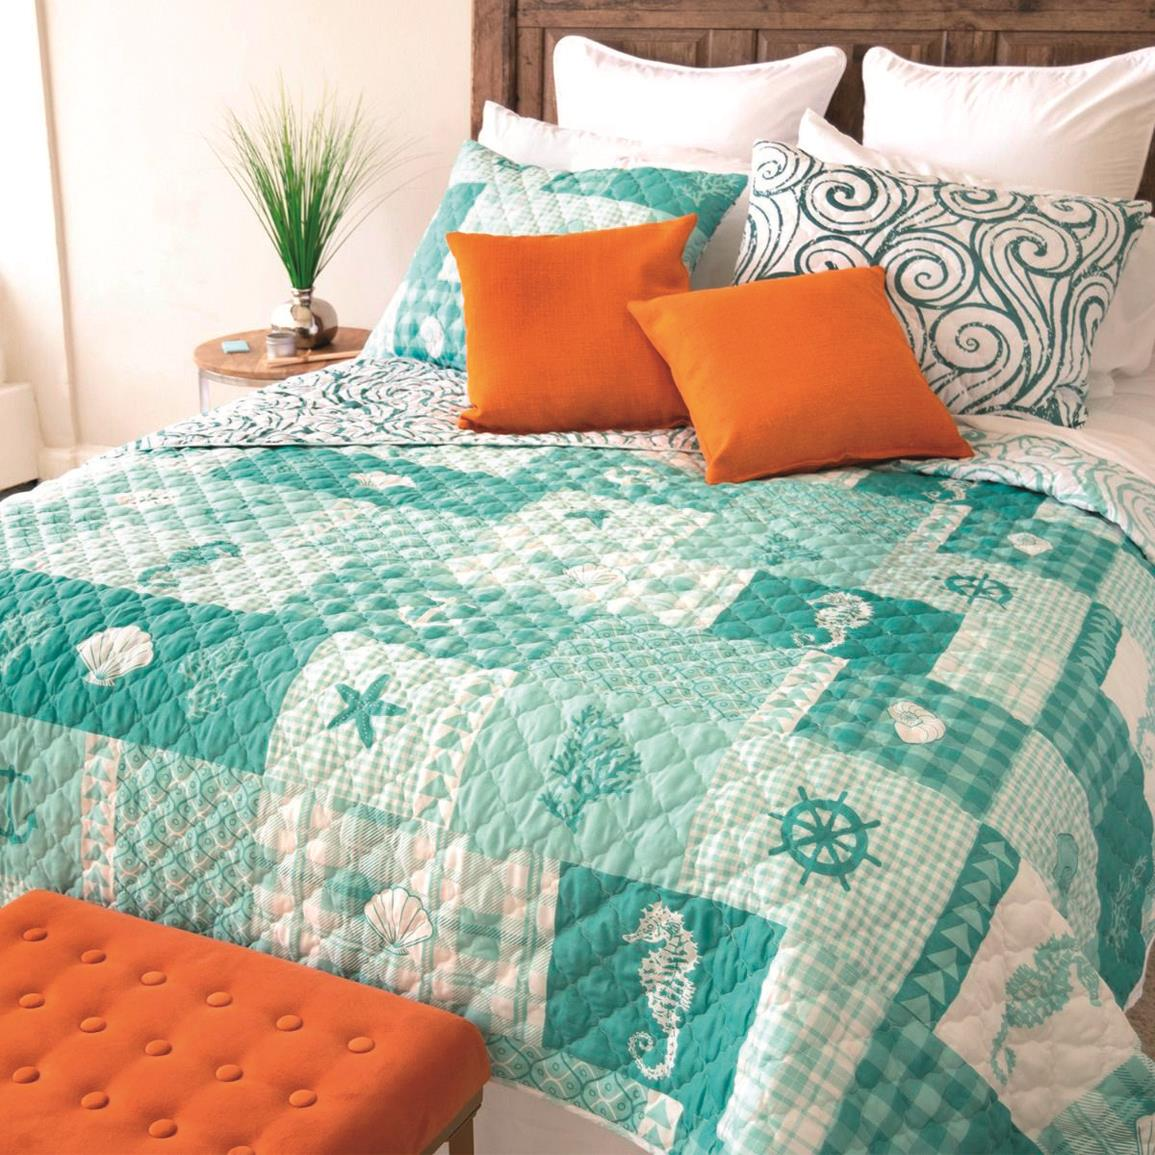 Your Lifestyle by Donna Sharp Seahorse Grid Quilt Set, 3 Piece